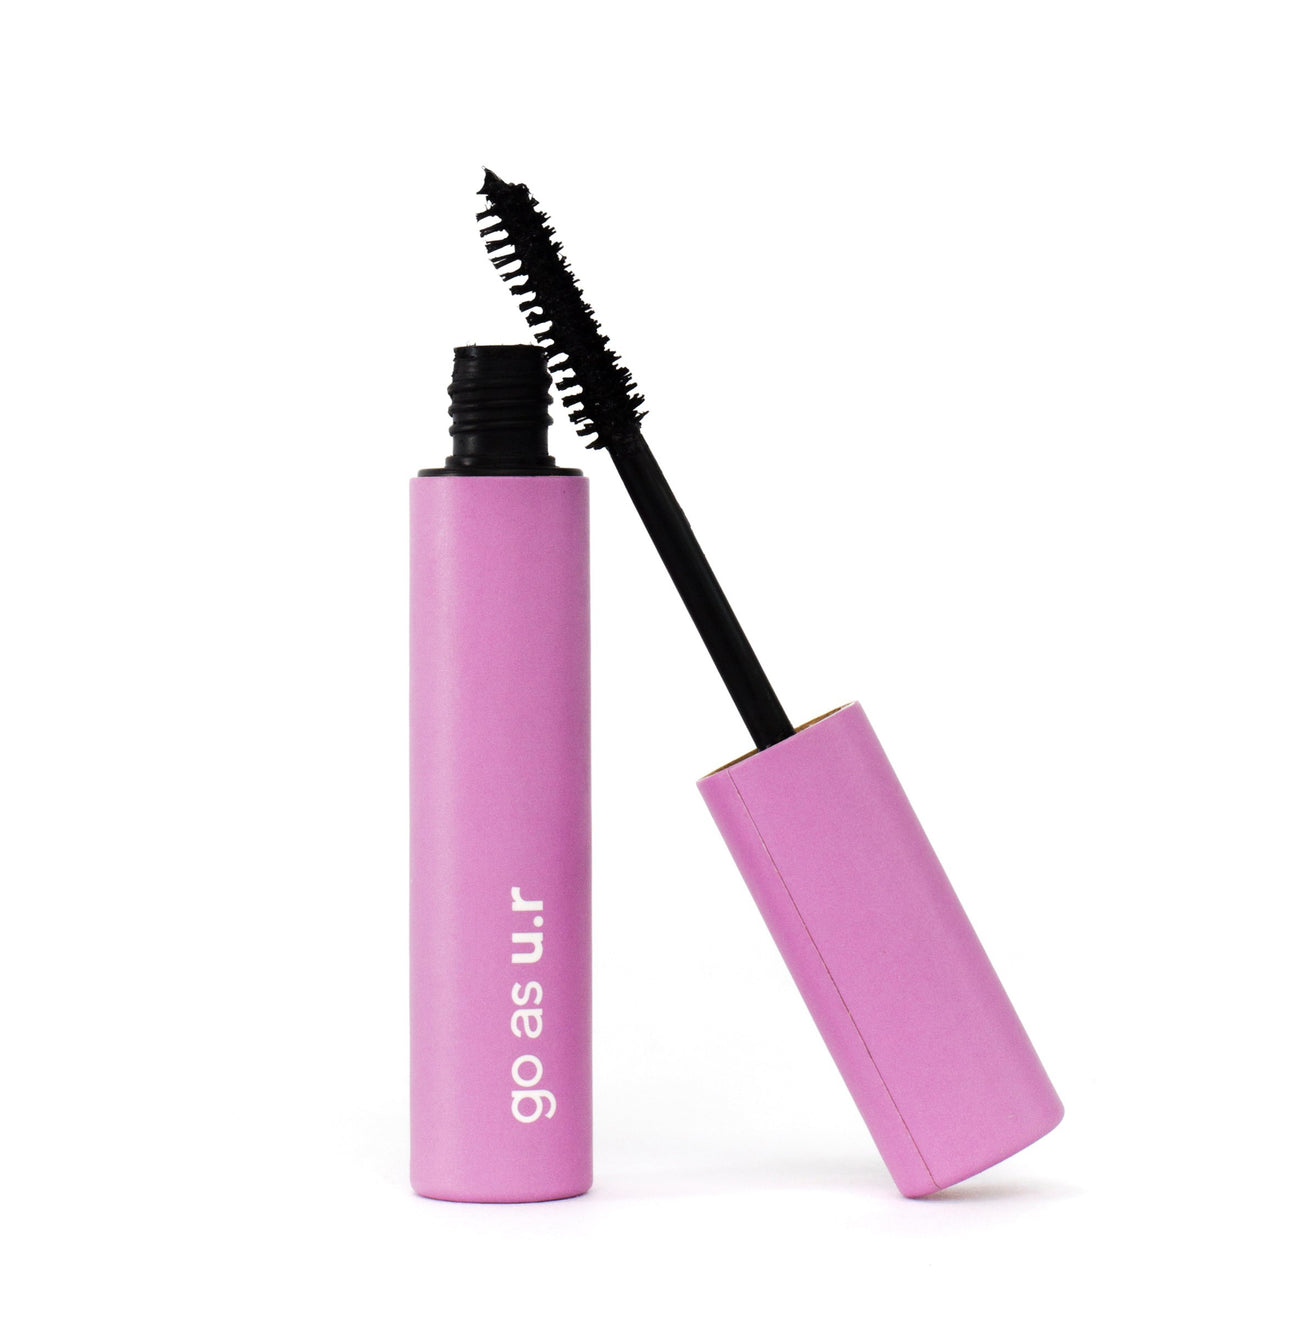 lengthening mascara | black